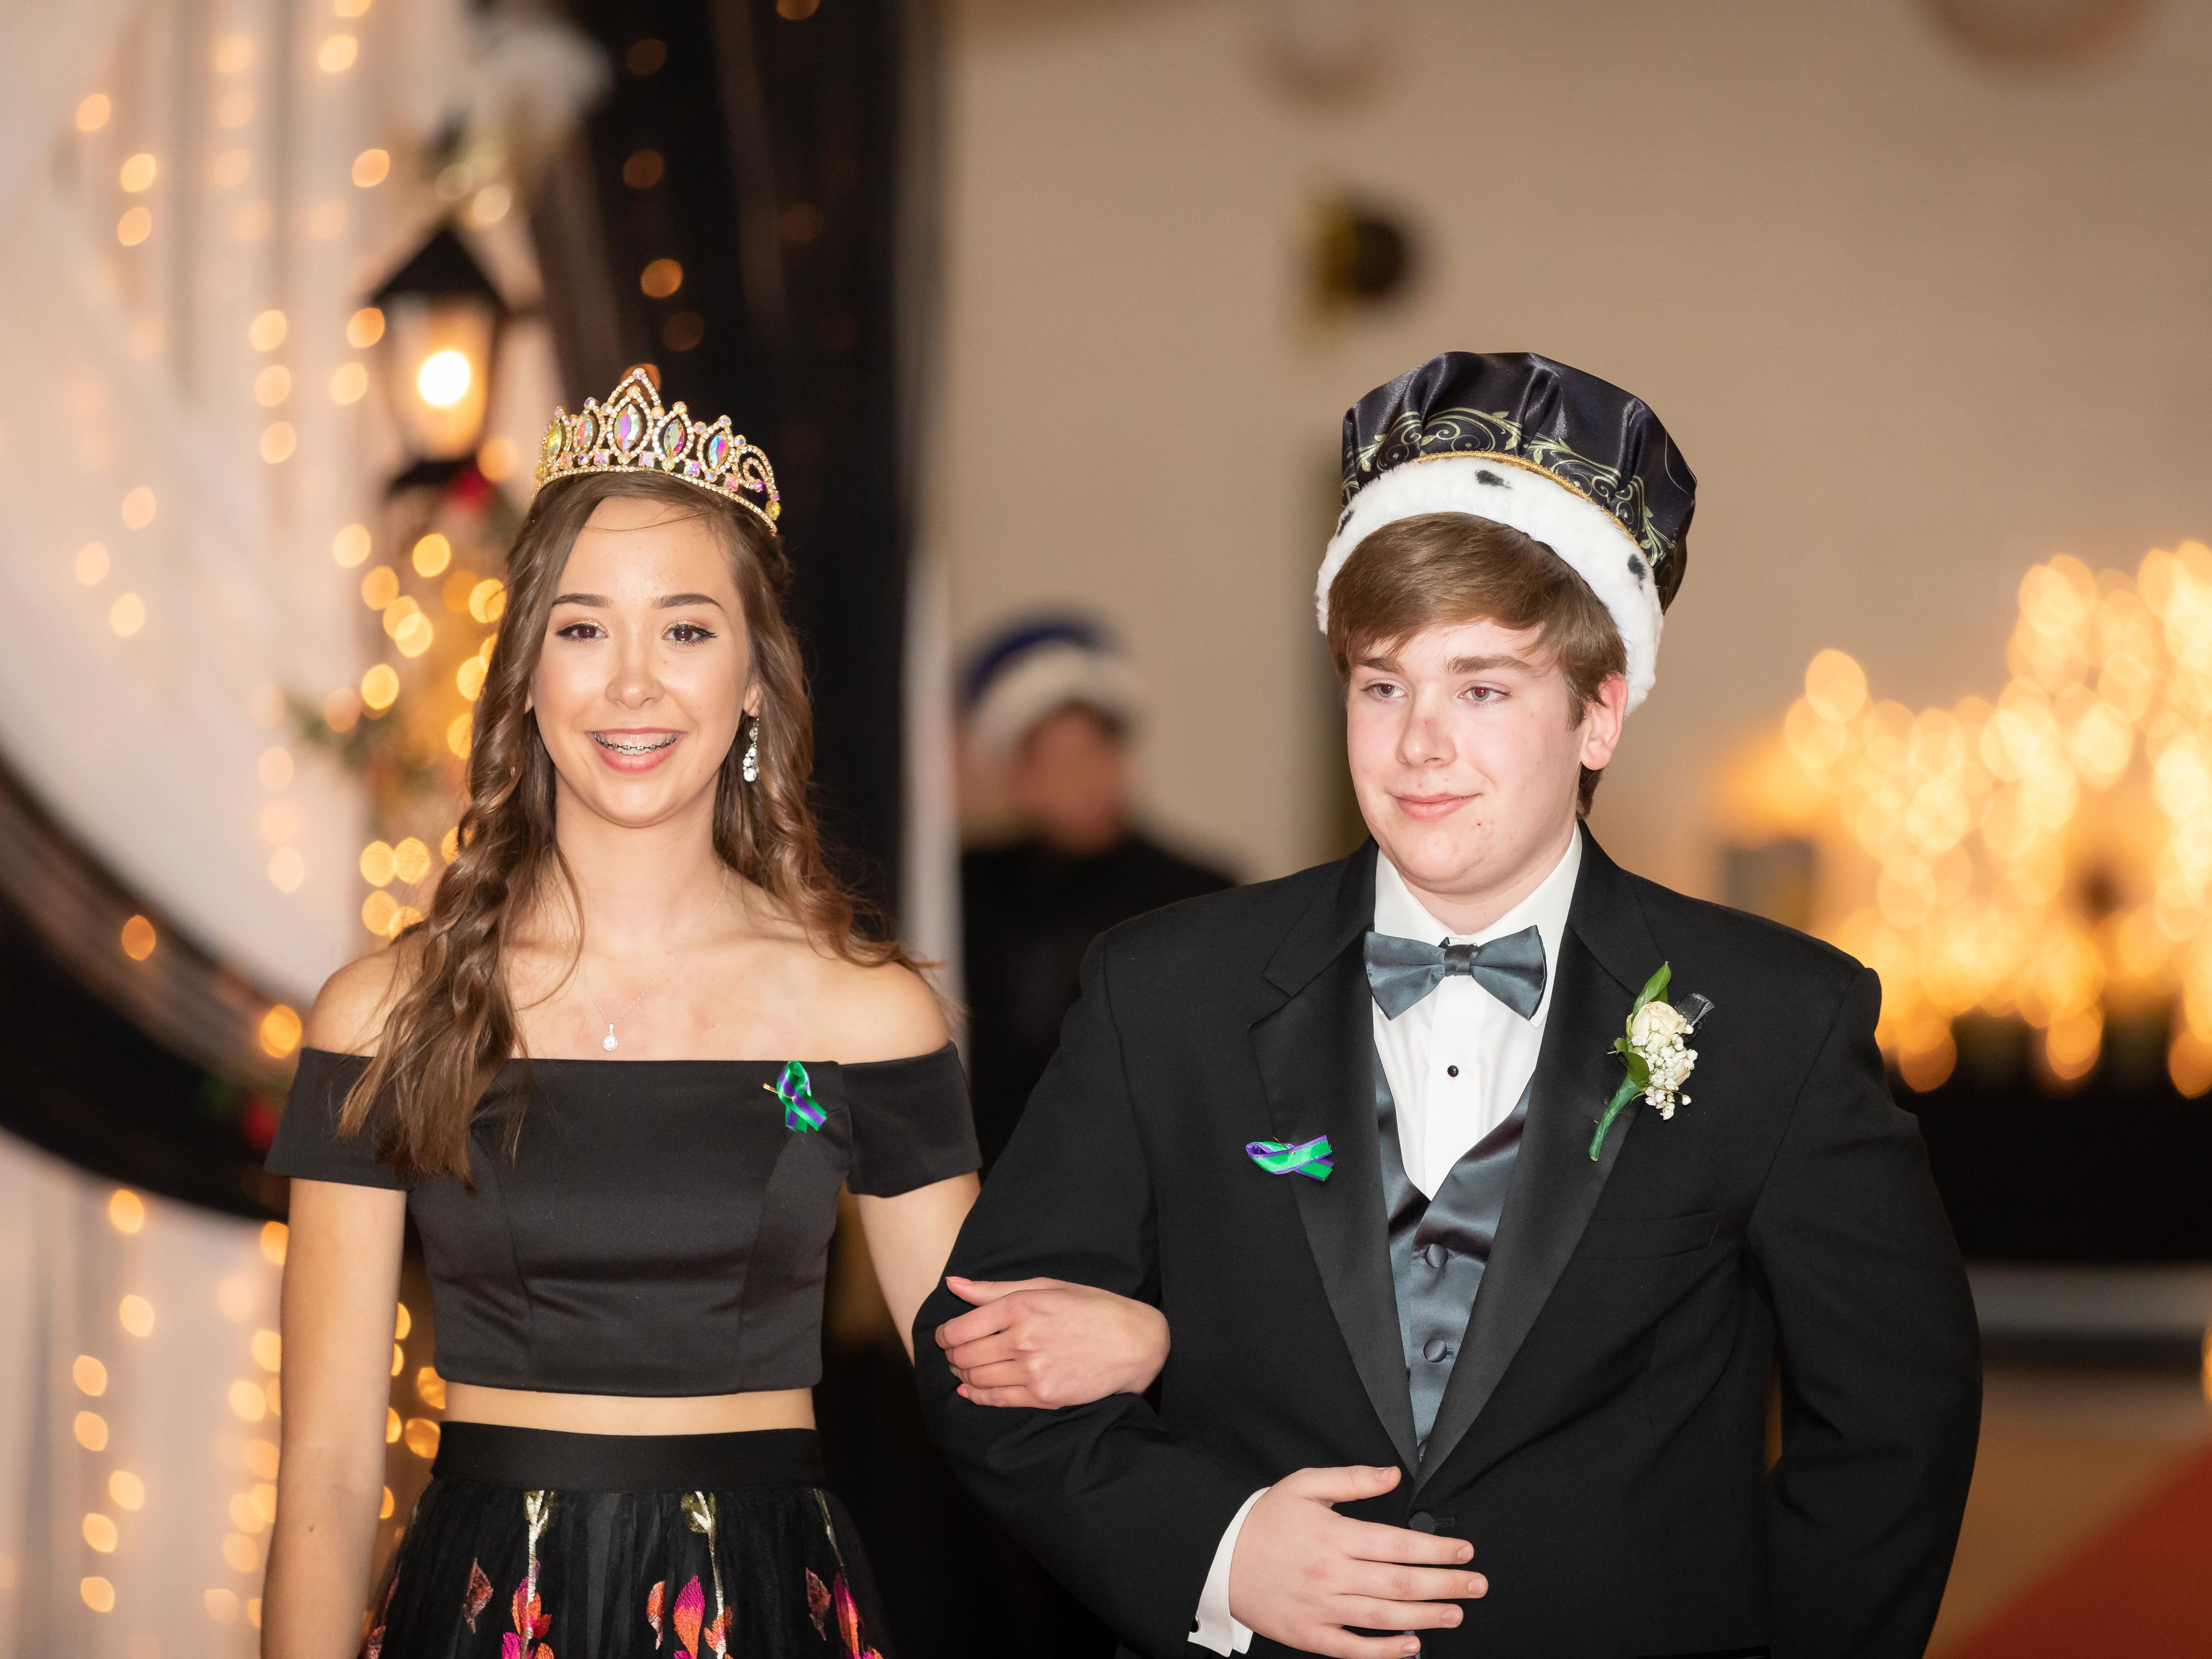 Makenzie Amundson and Jonah Thomas were named queen and king during the Nekoosa High School prom on Saturday, April 27, 2019, at Nekoosa High School.